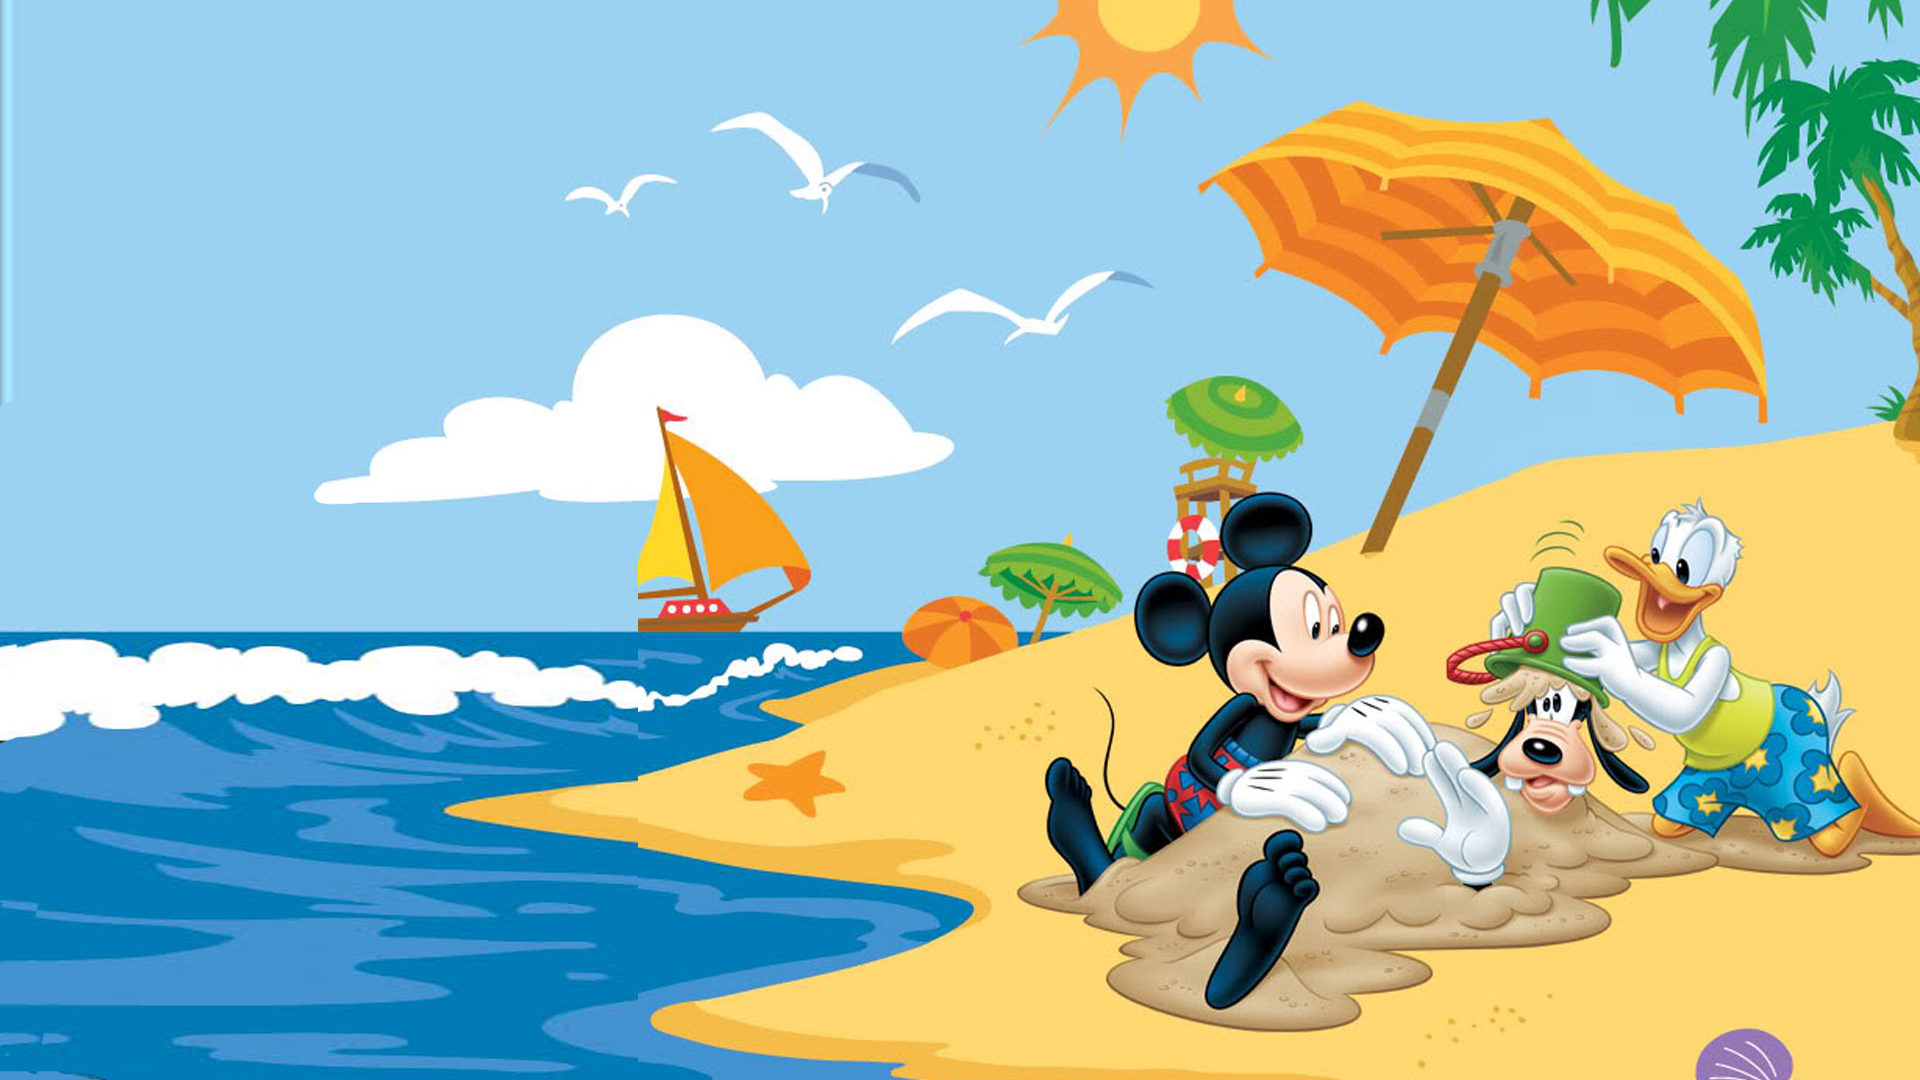 Adventure Time Wallpaper Hd Android Summer Adventures With Mickey Mouse Donald Duck Goofy